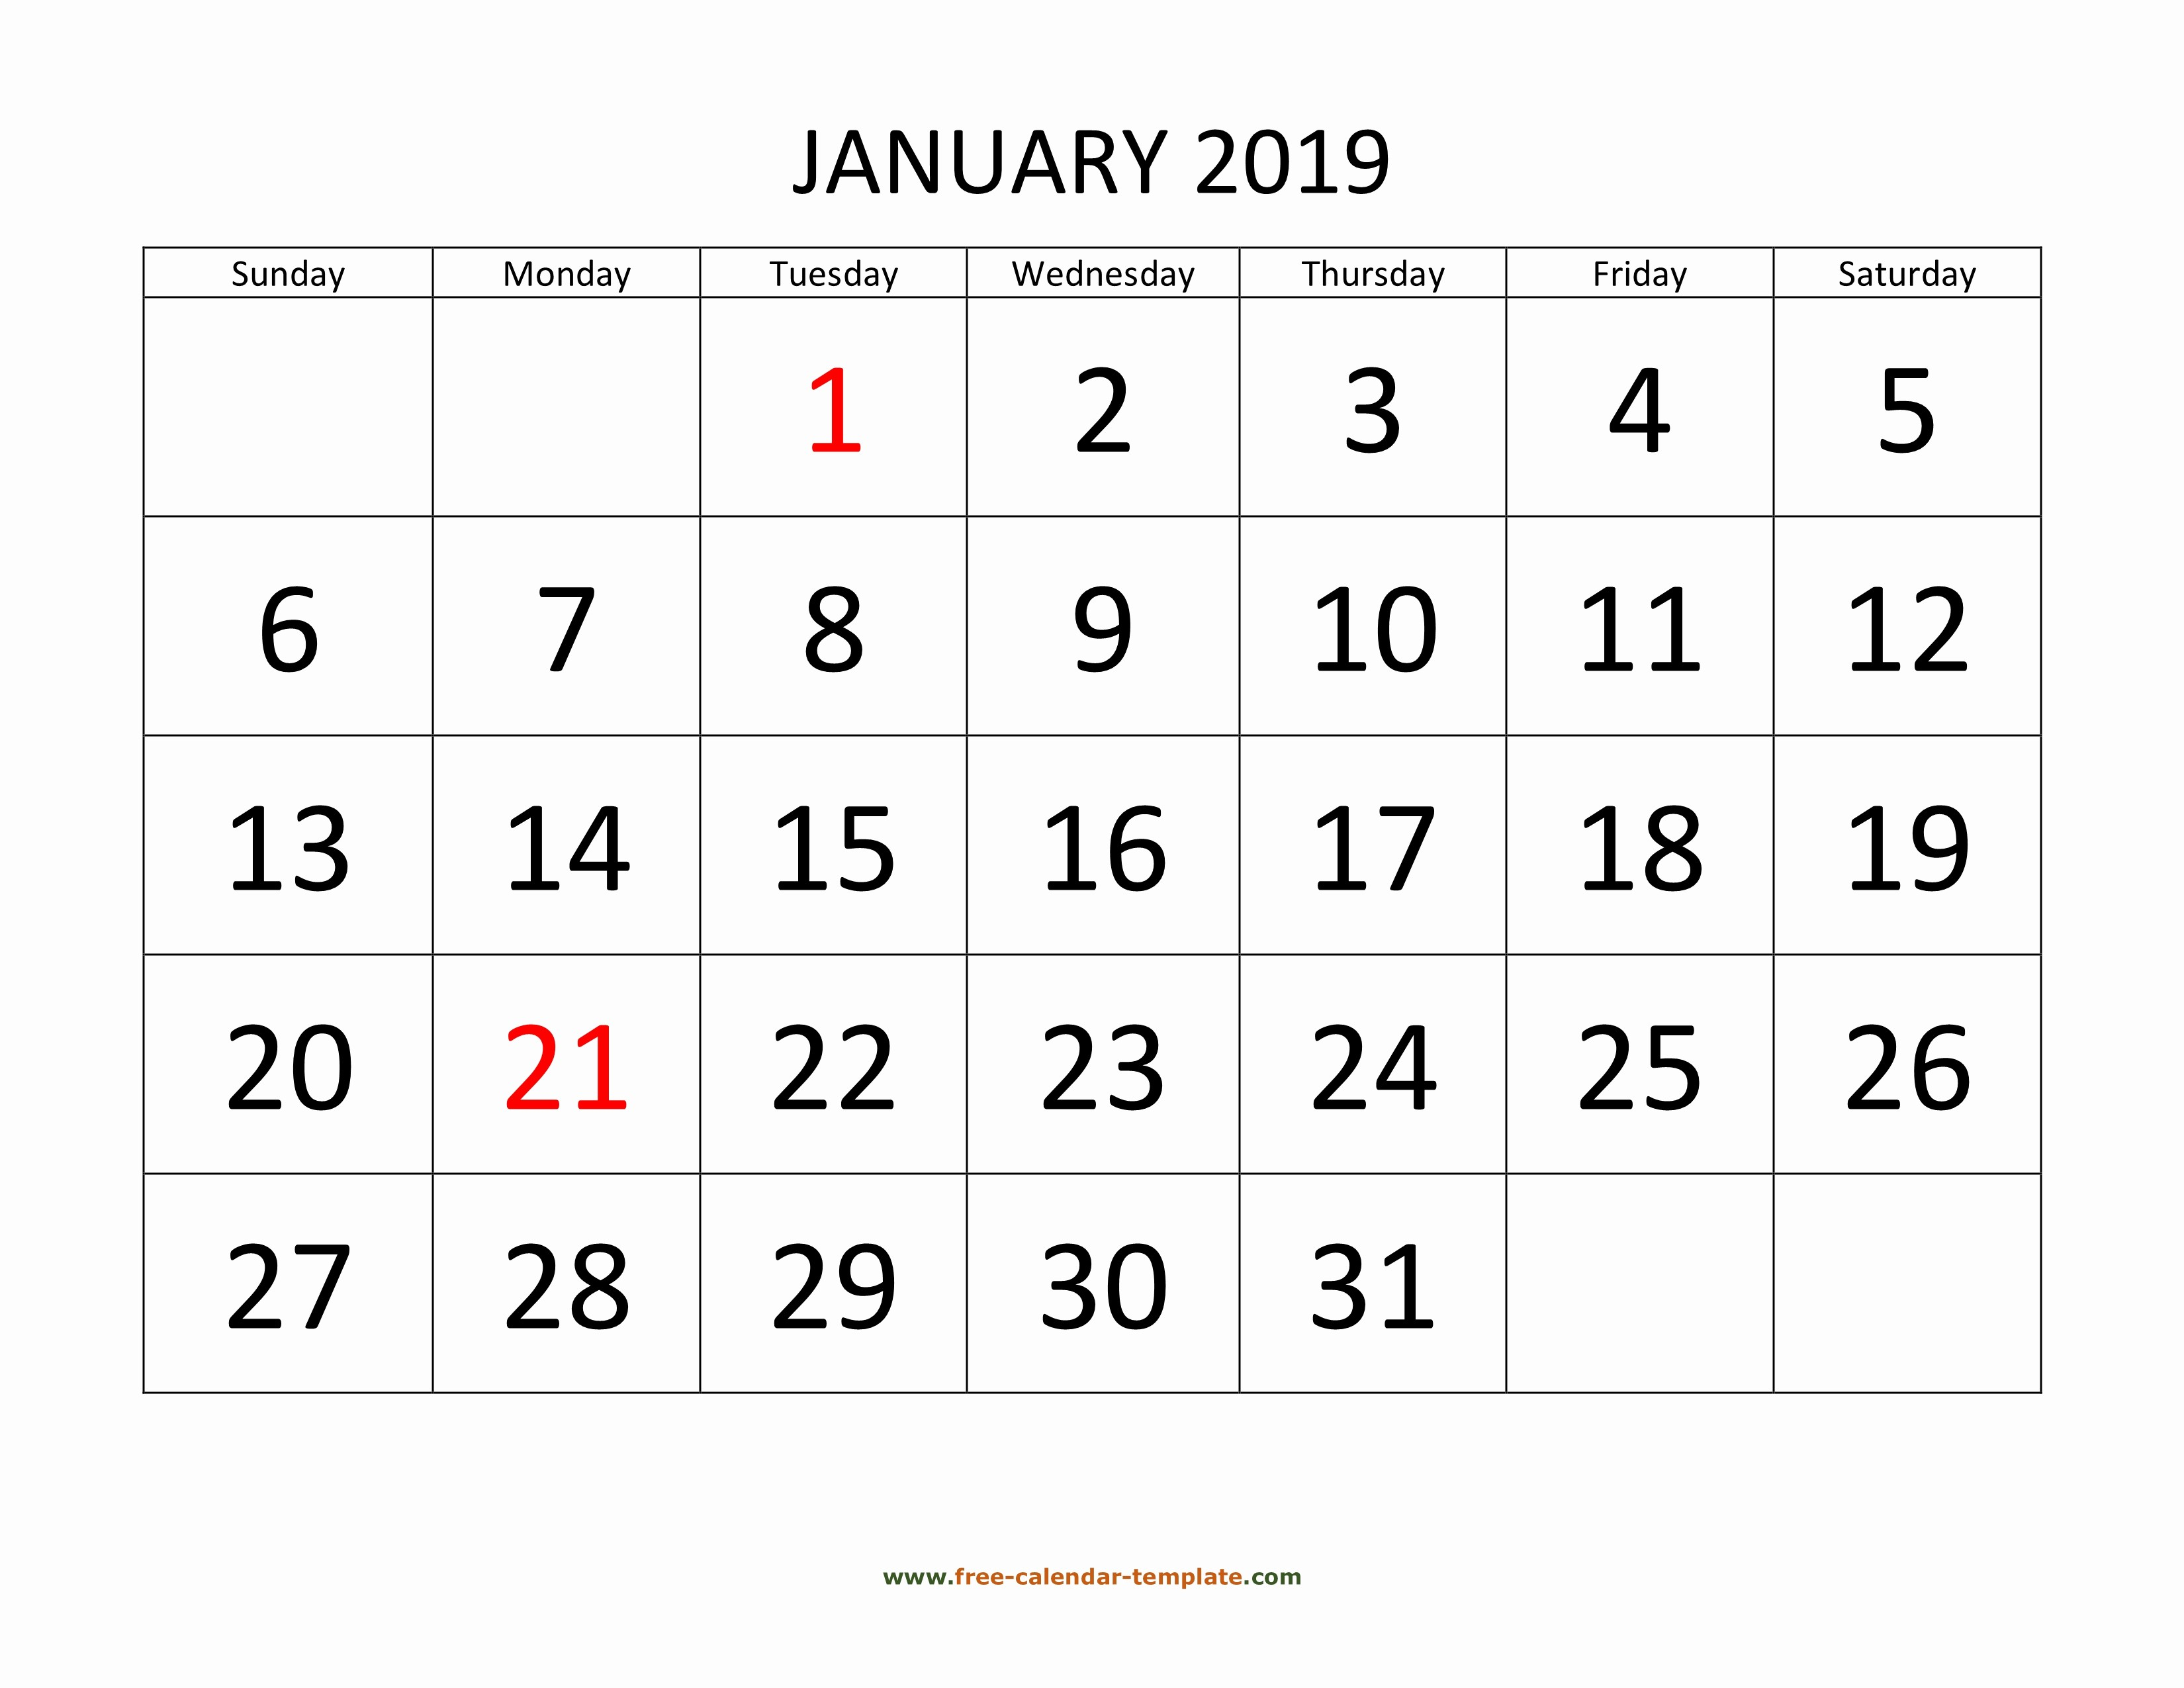 2019 Printable Calendar by Month Awesome Printable Monthly Calendar 2019